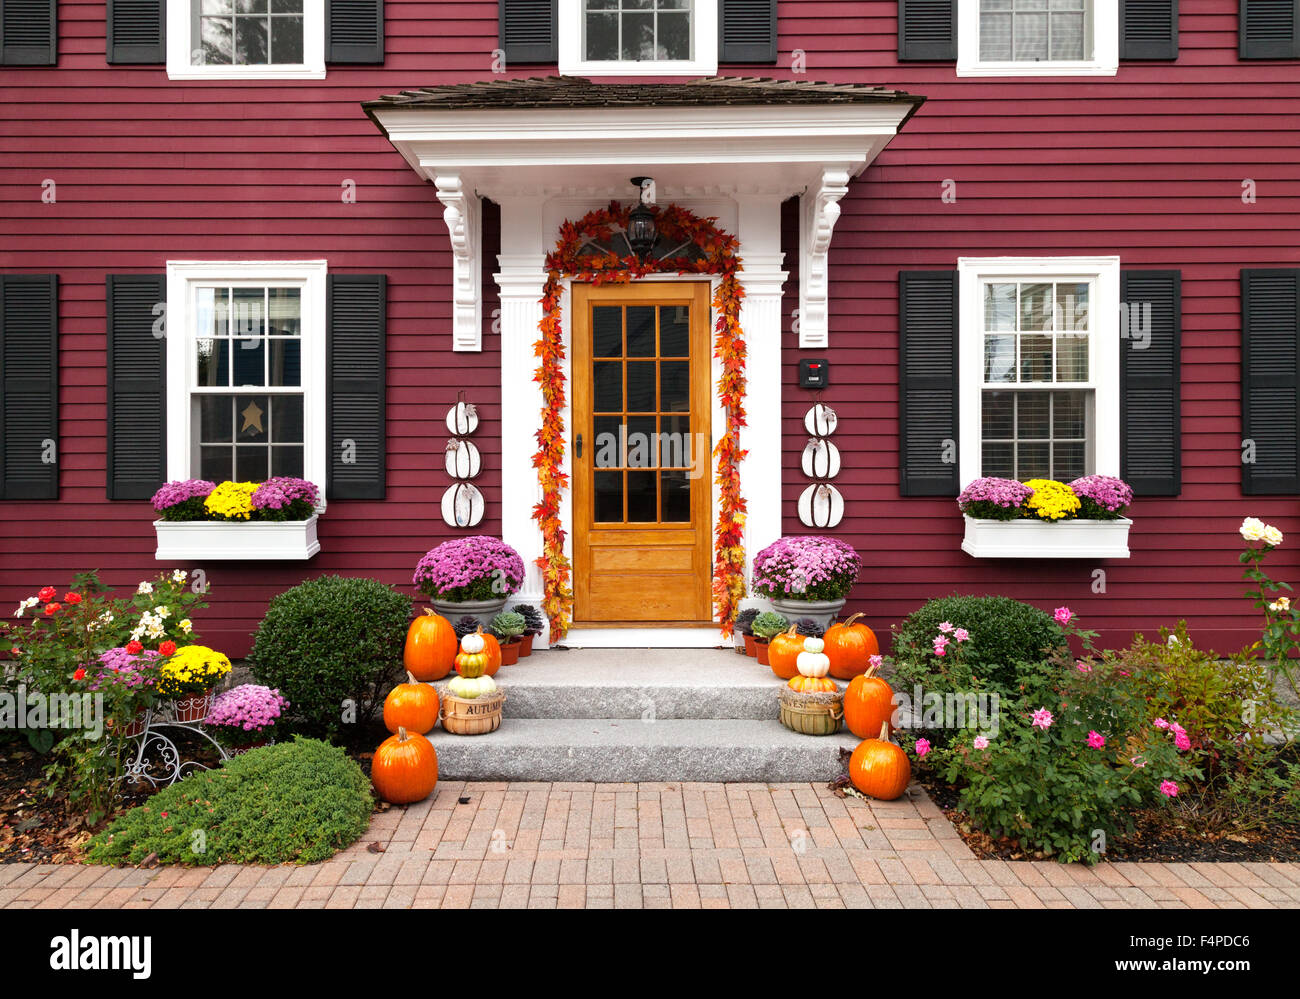 The front entrance and door of a house decorated for Halloween ...